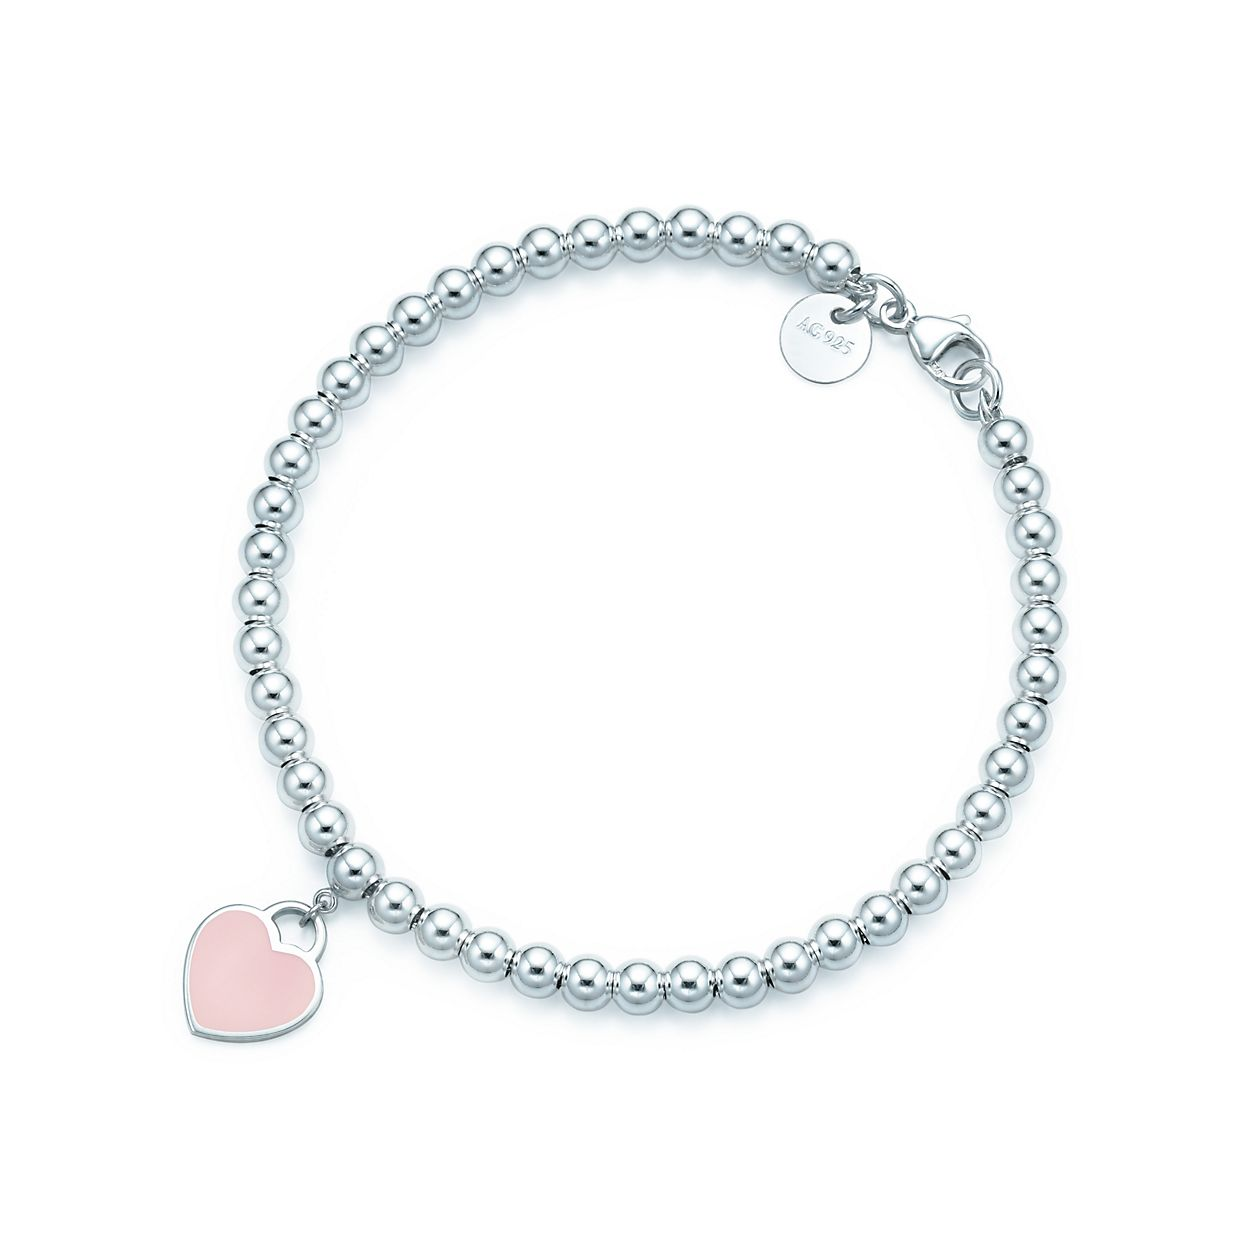 sterling constrain return tag to co bracelet jewelry id wid heart ed silver charm fmt m tiffany bracelets hei fit